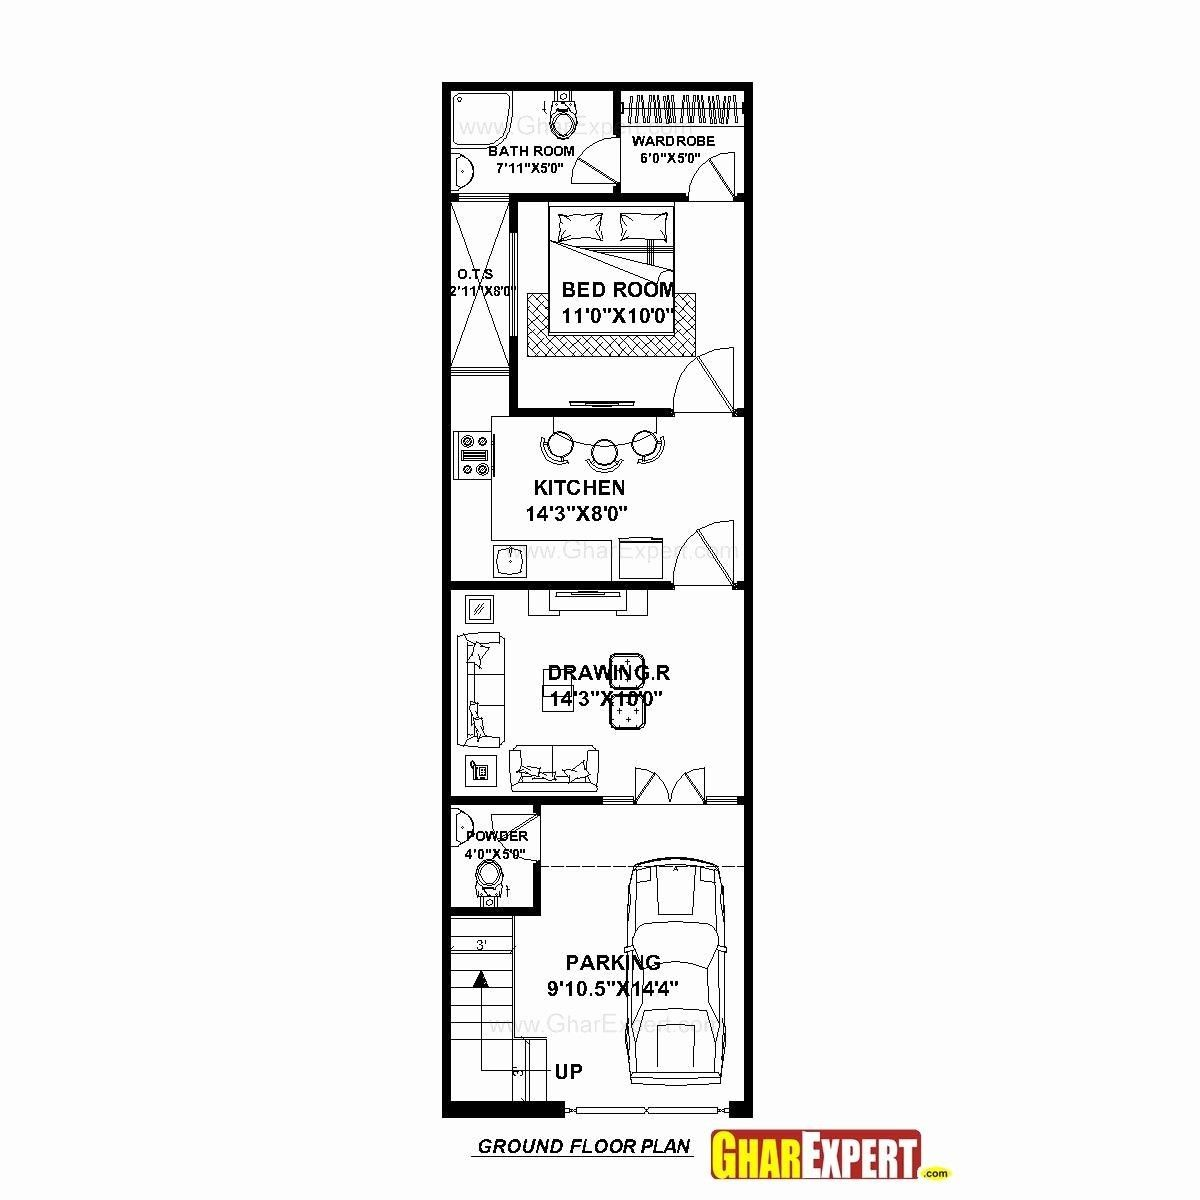 25 Custom House Plans Online Pin On Jk In 2020 House Plans With Pictures Narrow House Plans Duplex House Plans